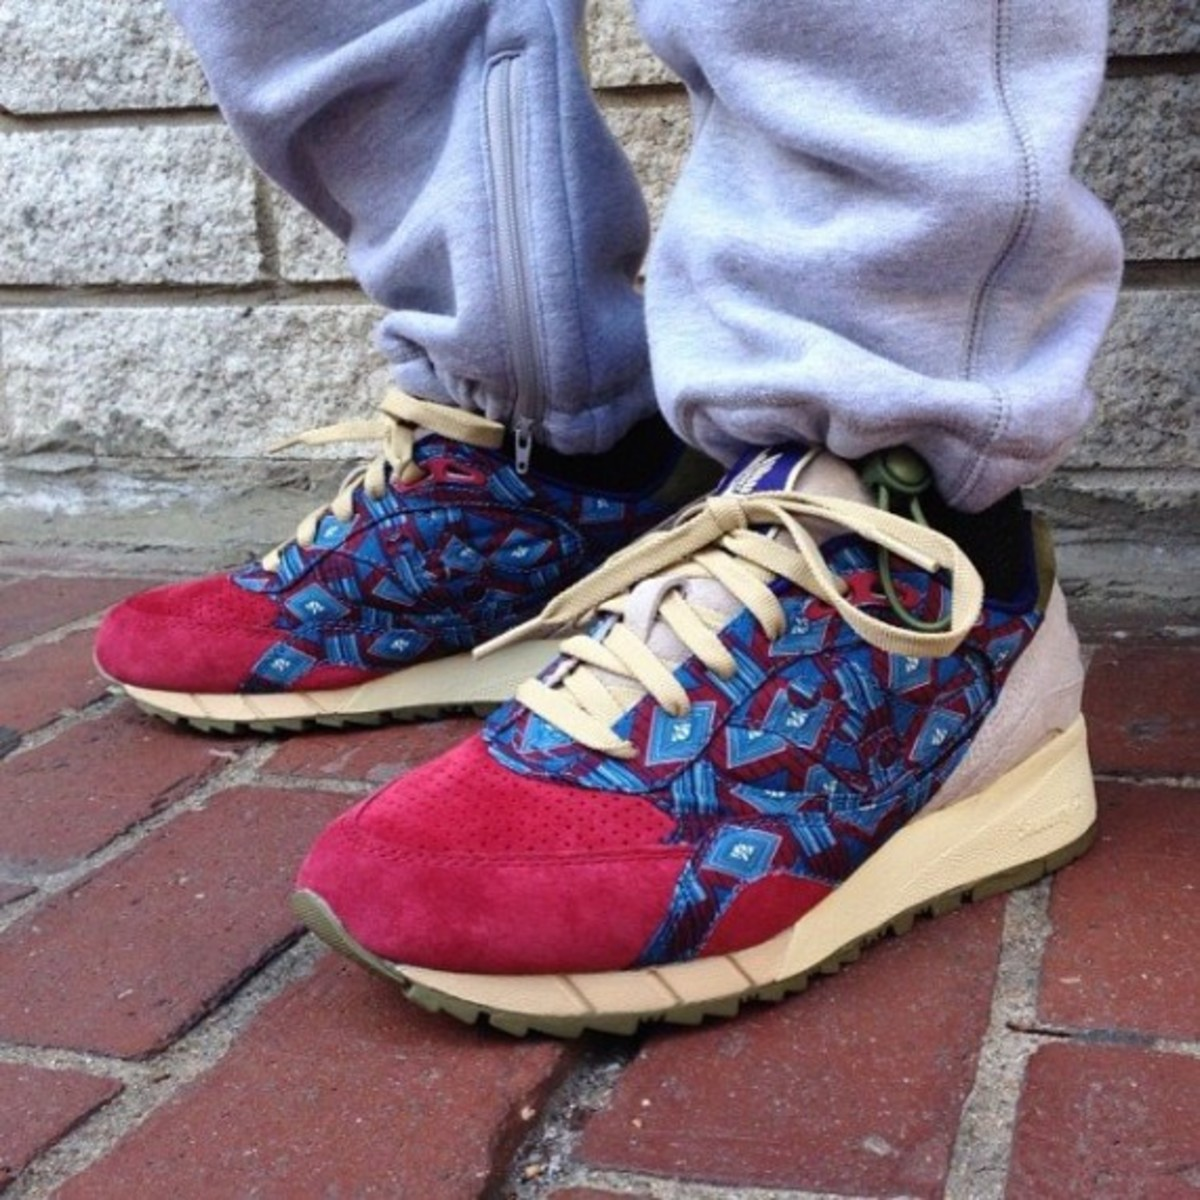 bodega-saucony-shadow-6000-african-print-pack-04